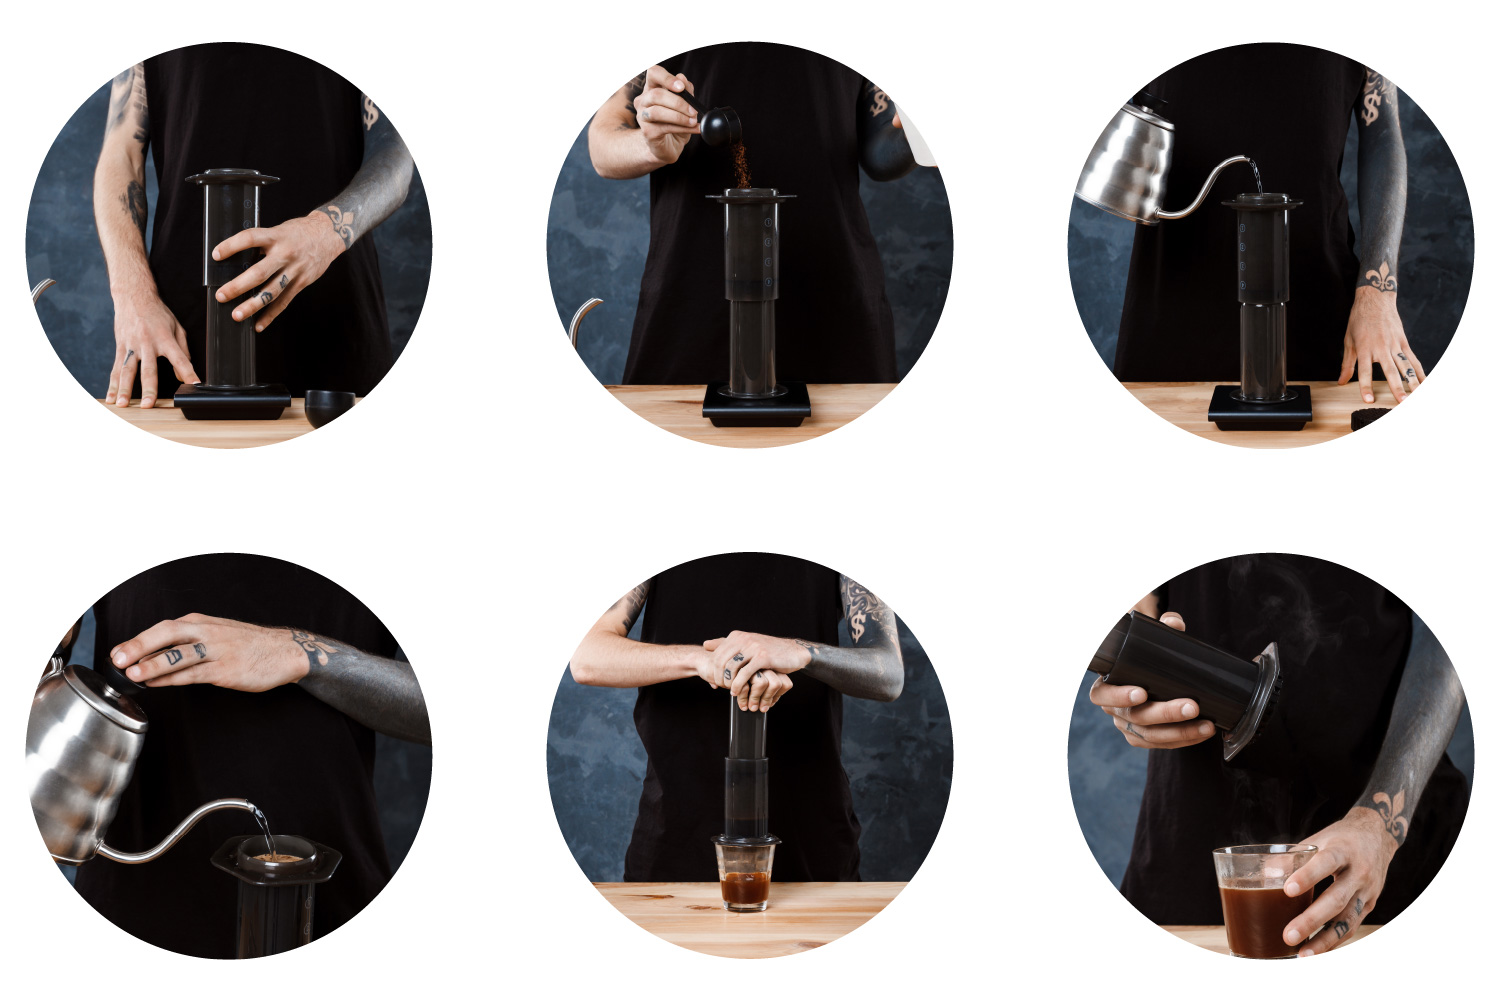 Aeropress - step by step guide